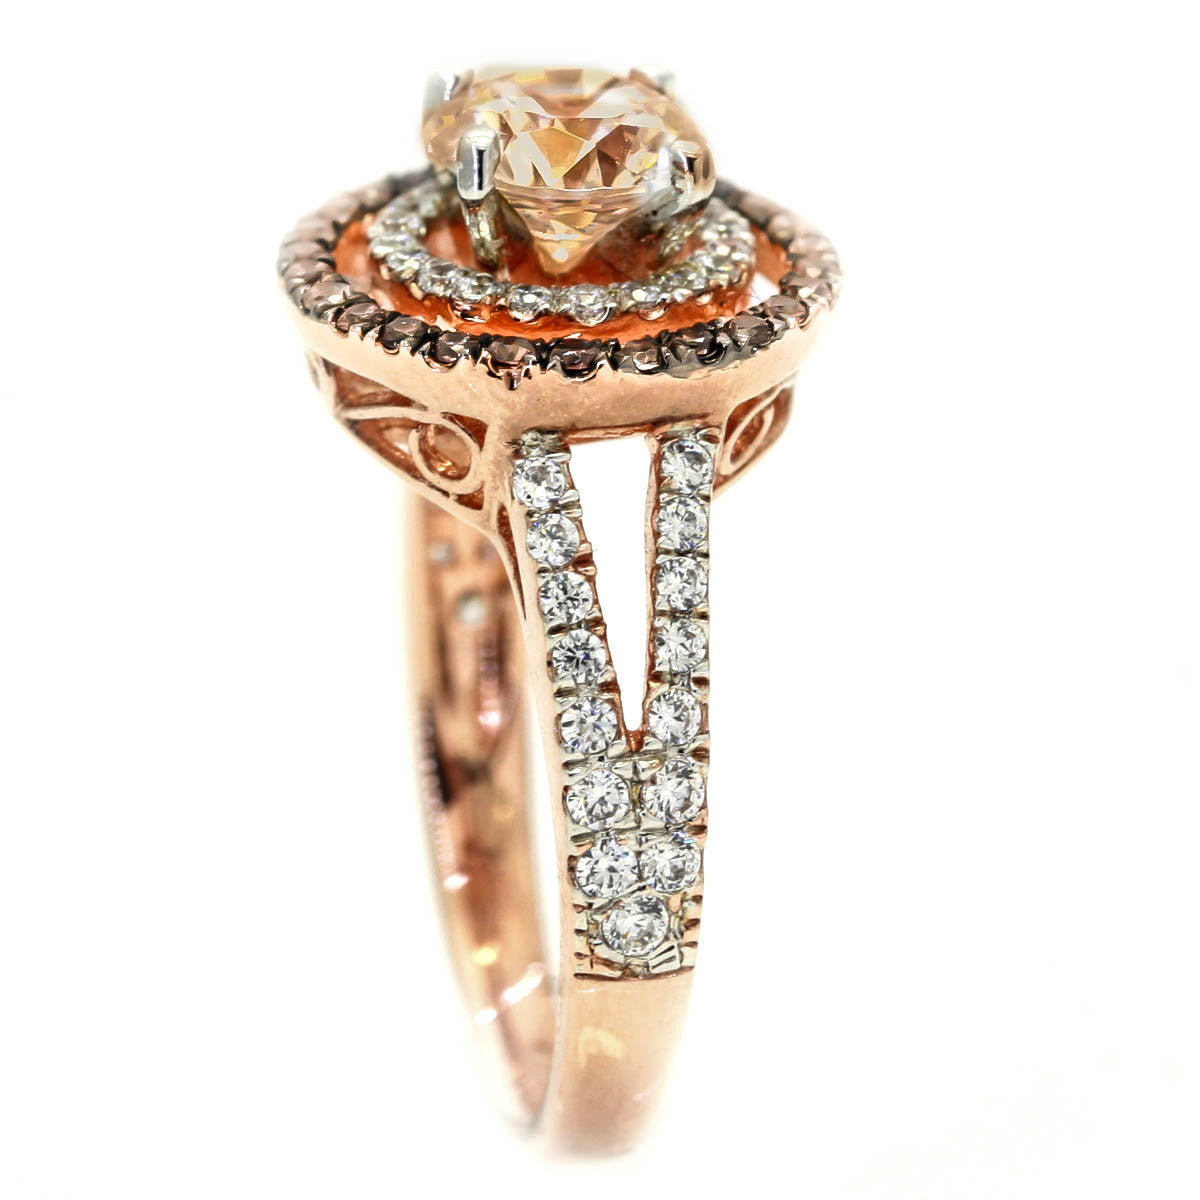 Double Halo Rose Gold, 6.5 mm Morganite Engagement Ring With .62 Carat Of White & Chocolate Brown Diamonds, Split Shank - MG94640